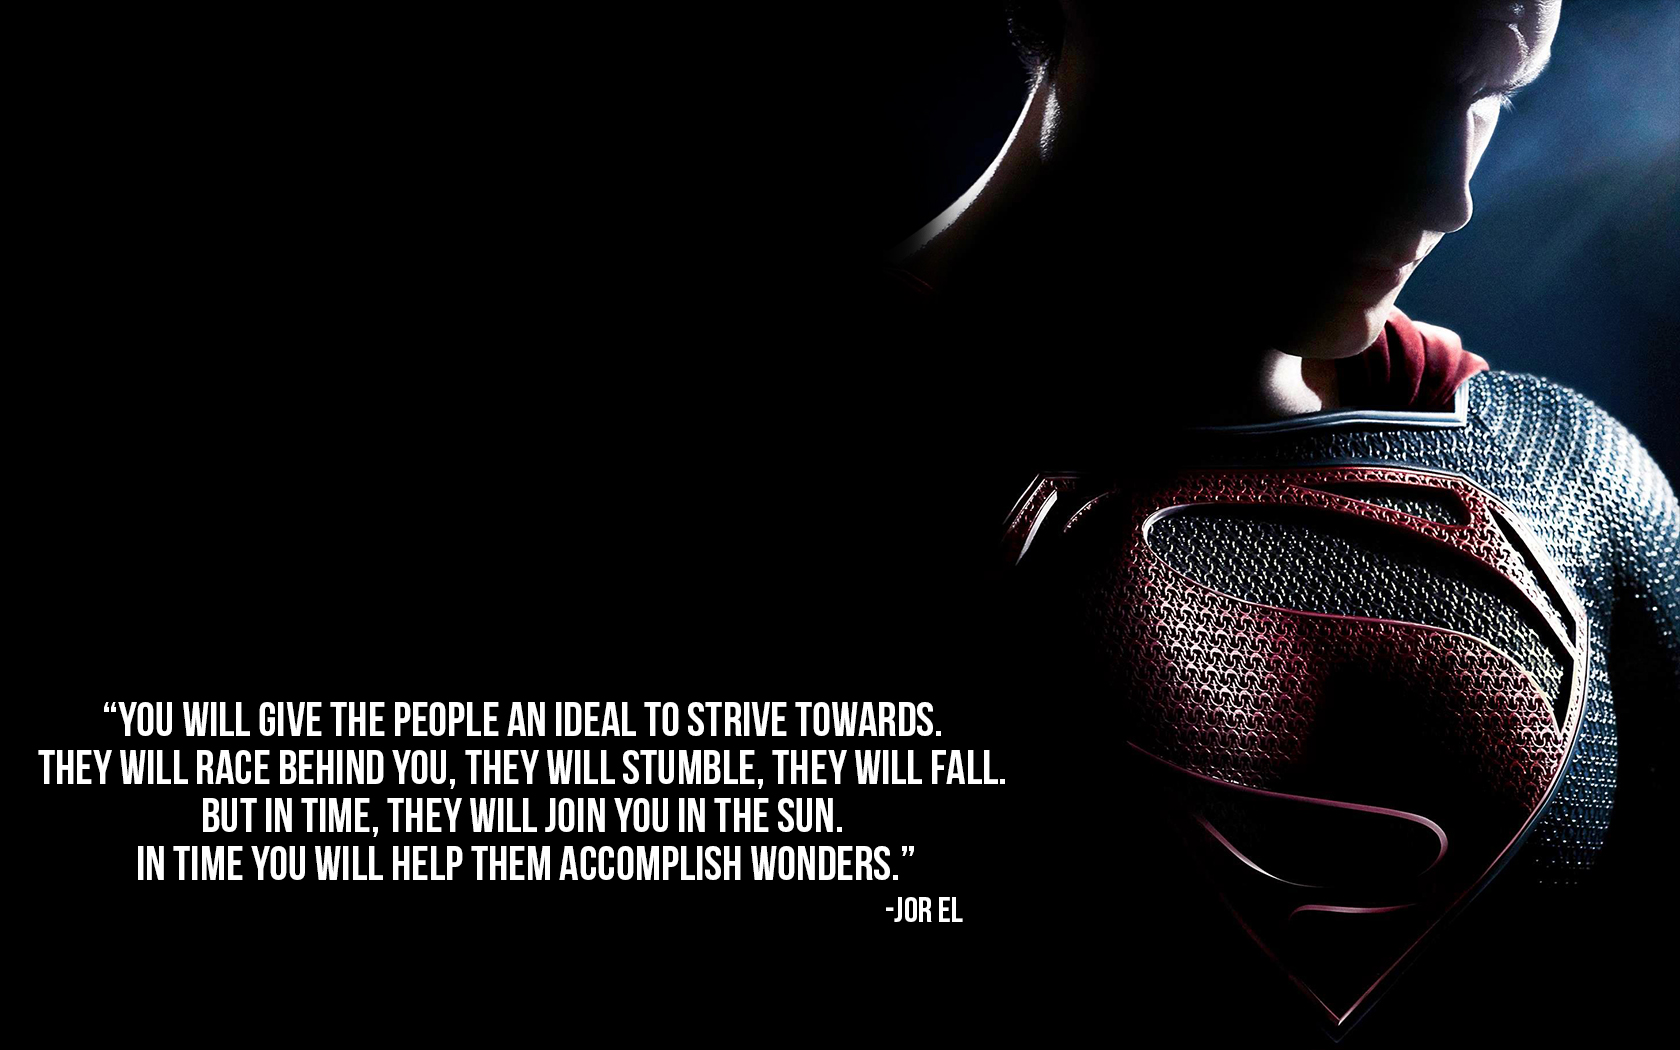 Man of Steel Superman wallpaper 1680x1050 228606 WallpaperUP 1680x1050